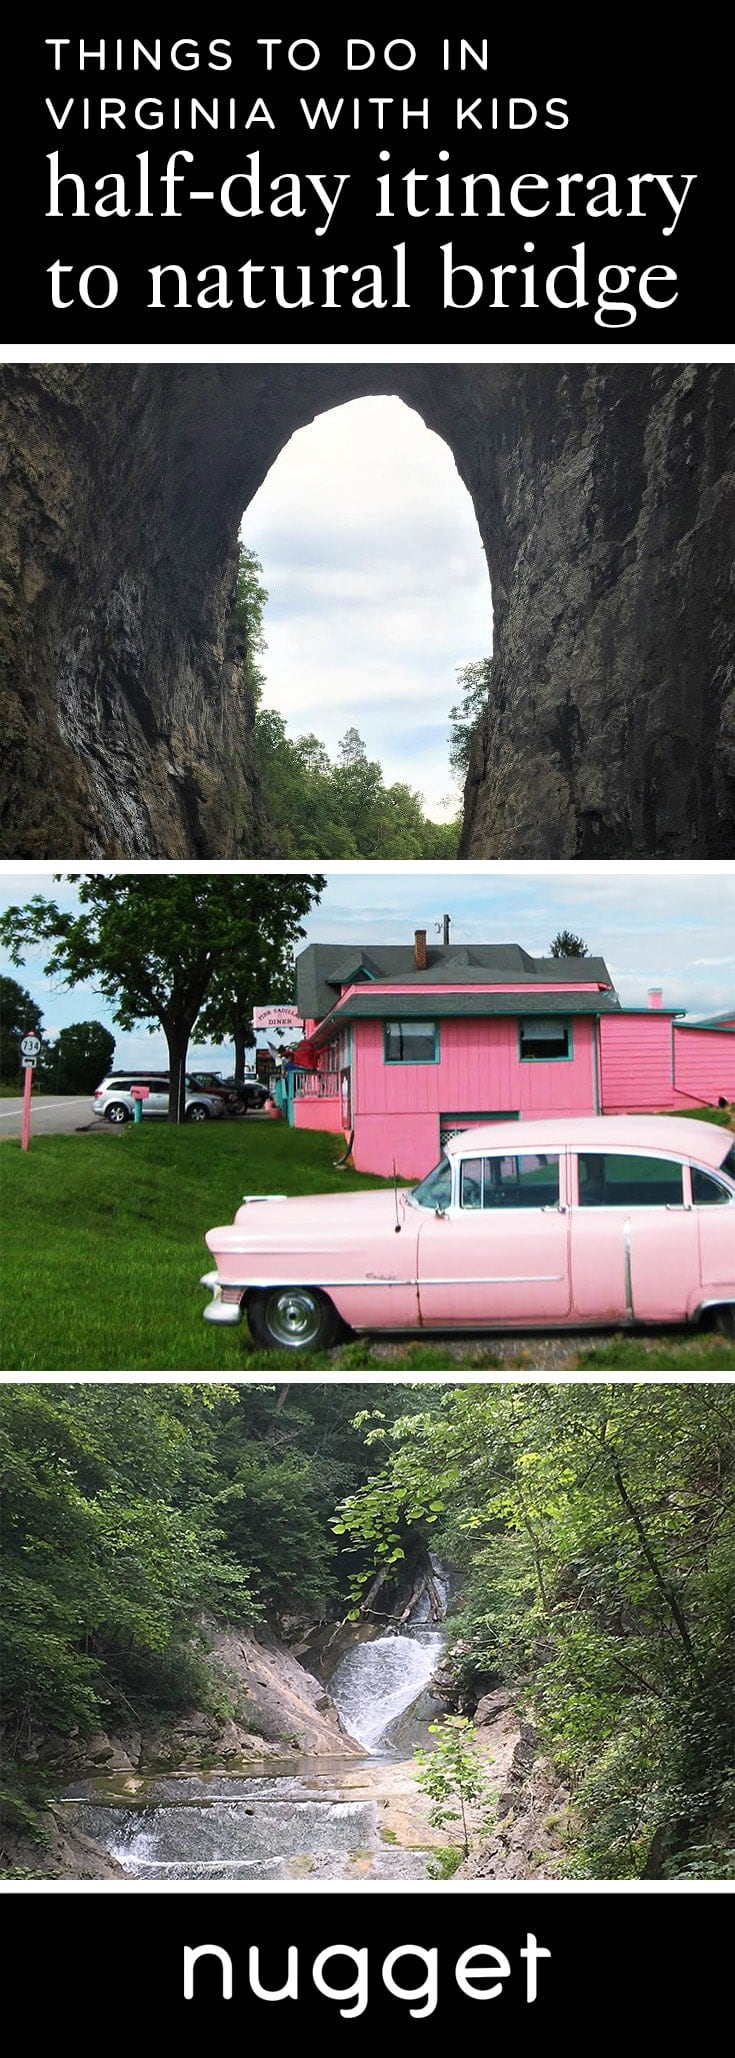 A '50s Diner and Nature at Natural Bridge, Virginia